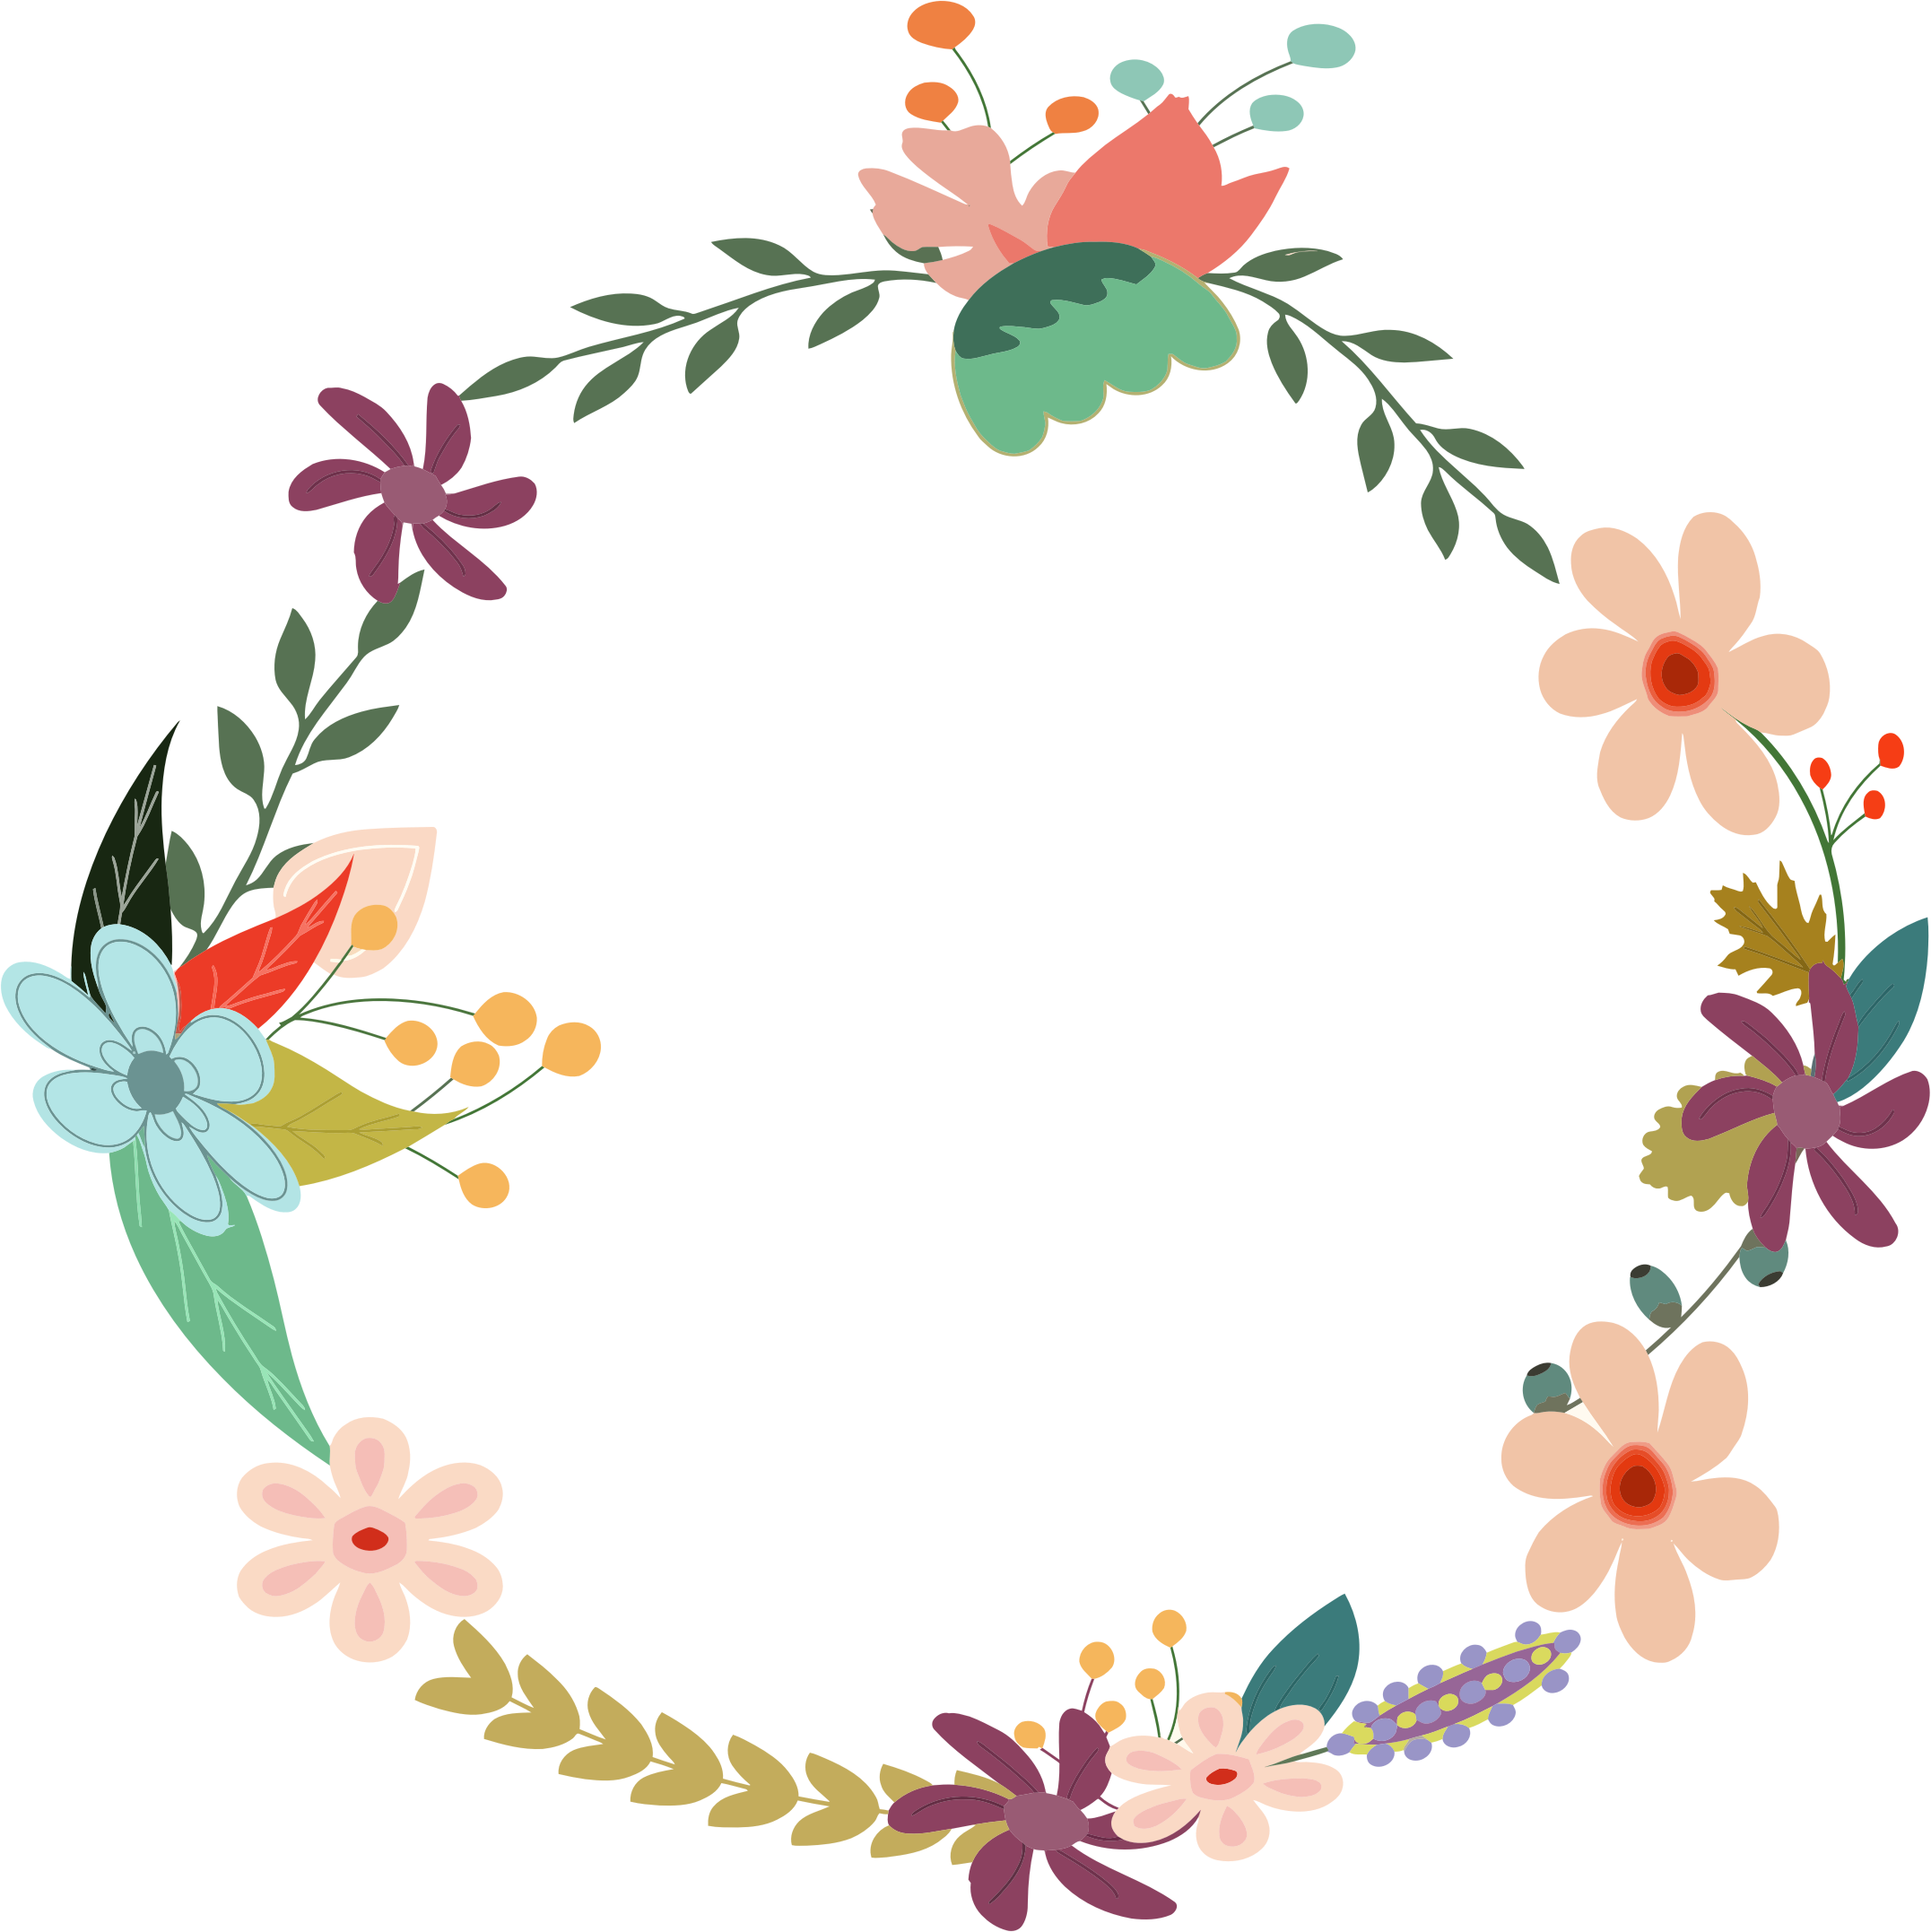 Vintage floral png. Wreath icons free and